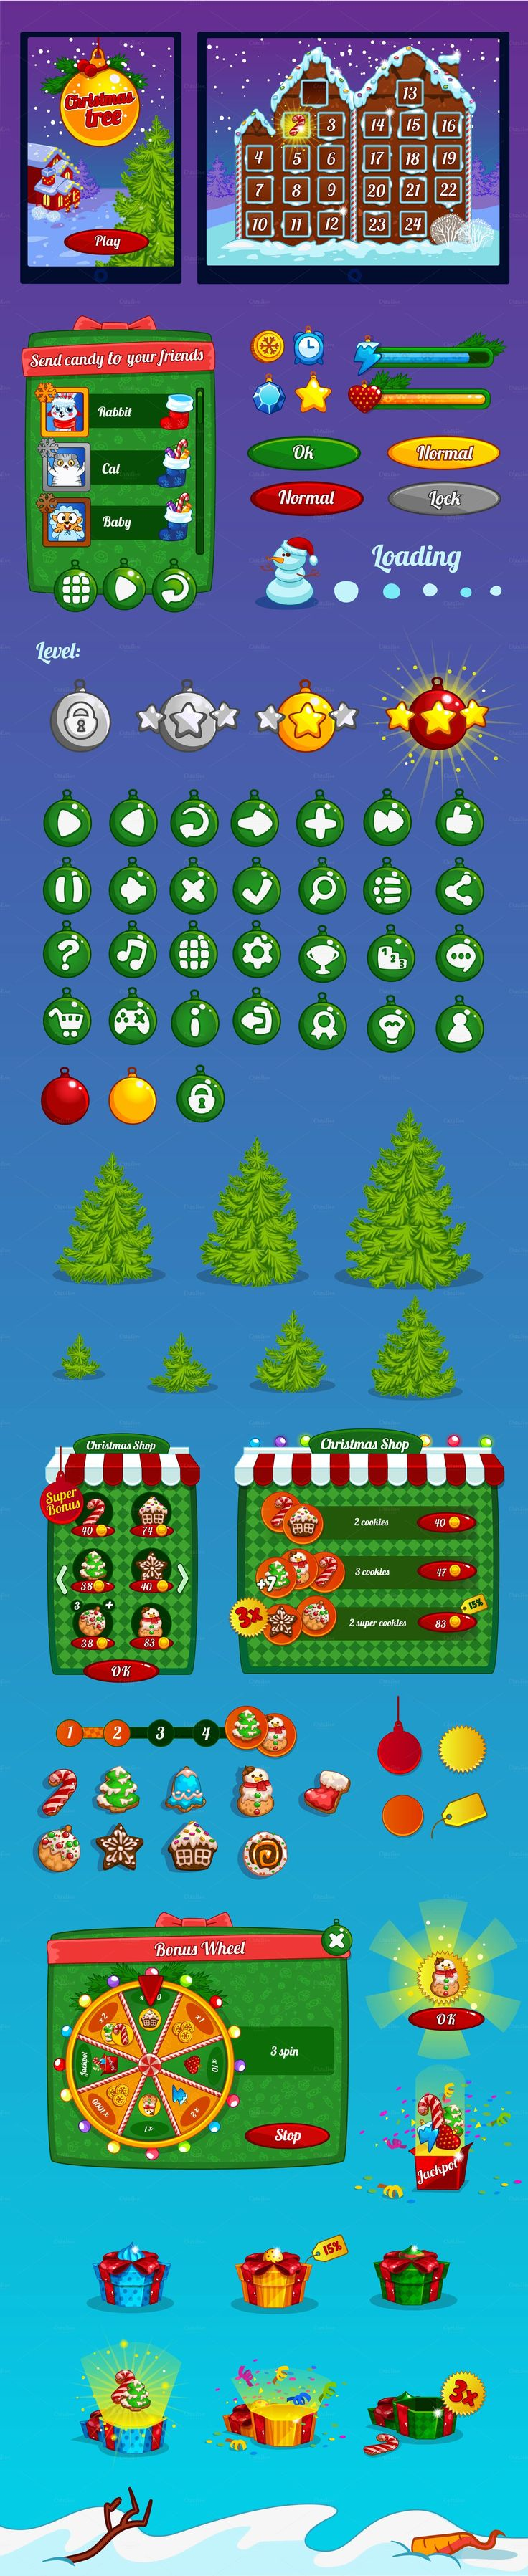 Christmas game interface by Game interface store on Creative Market